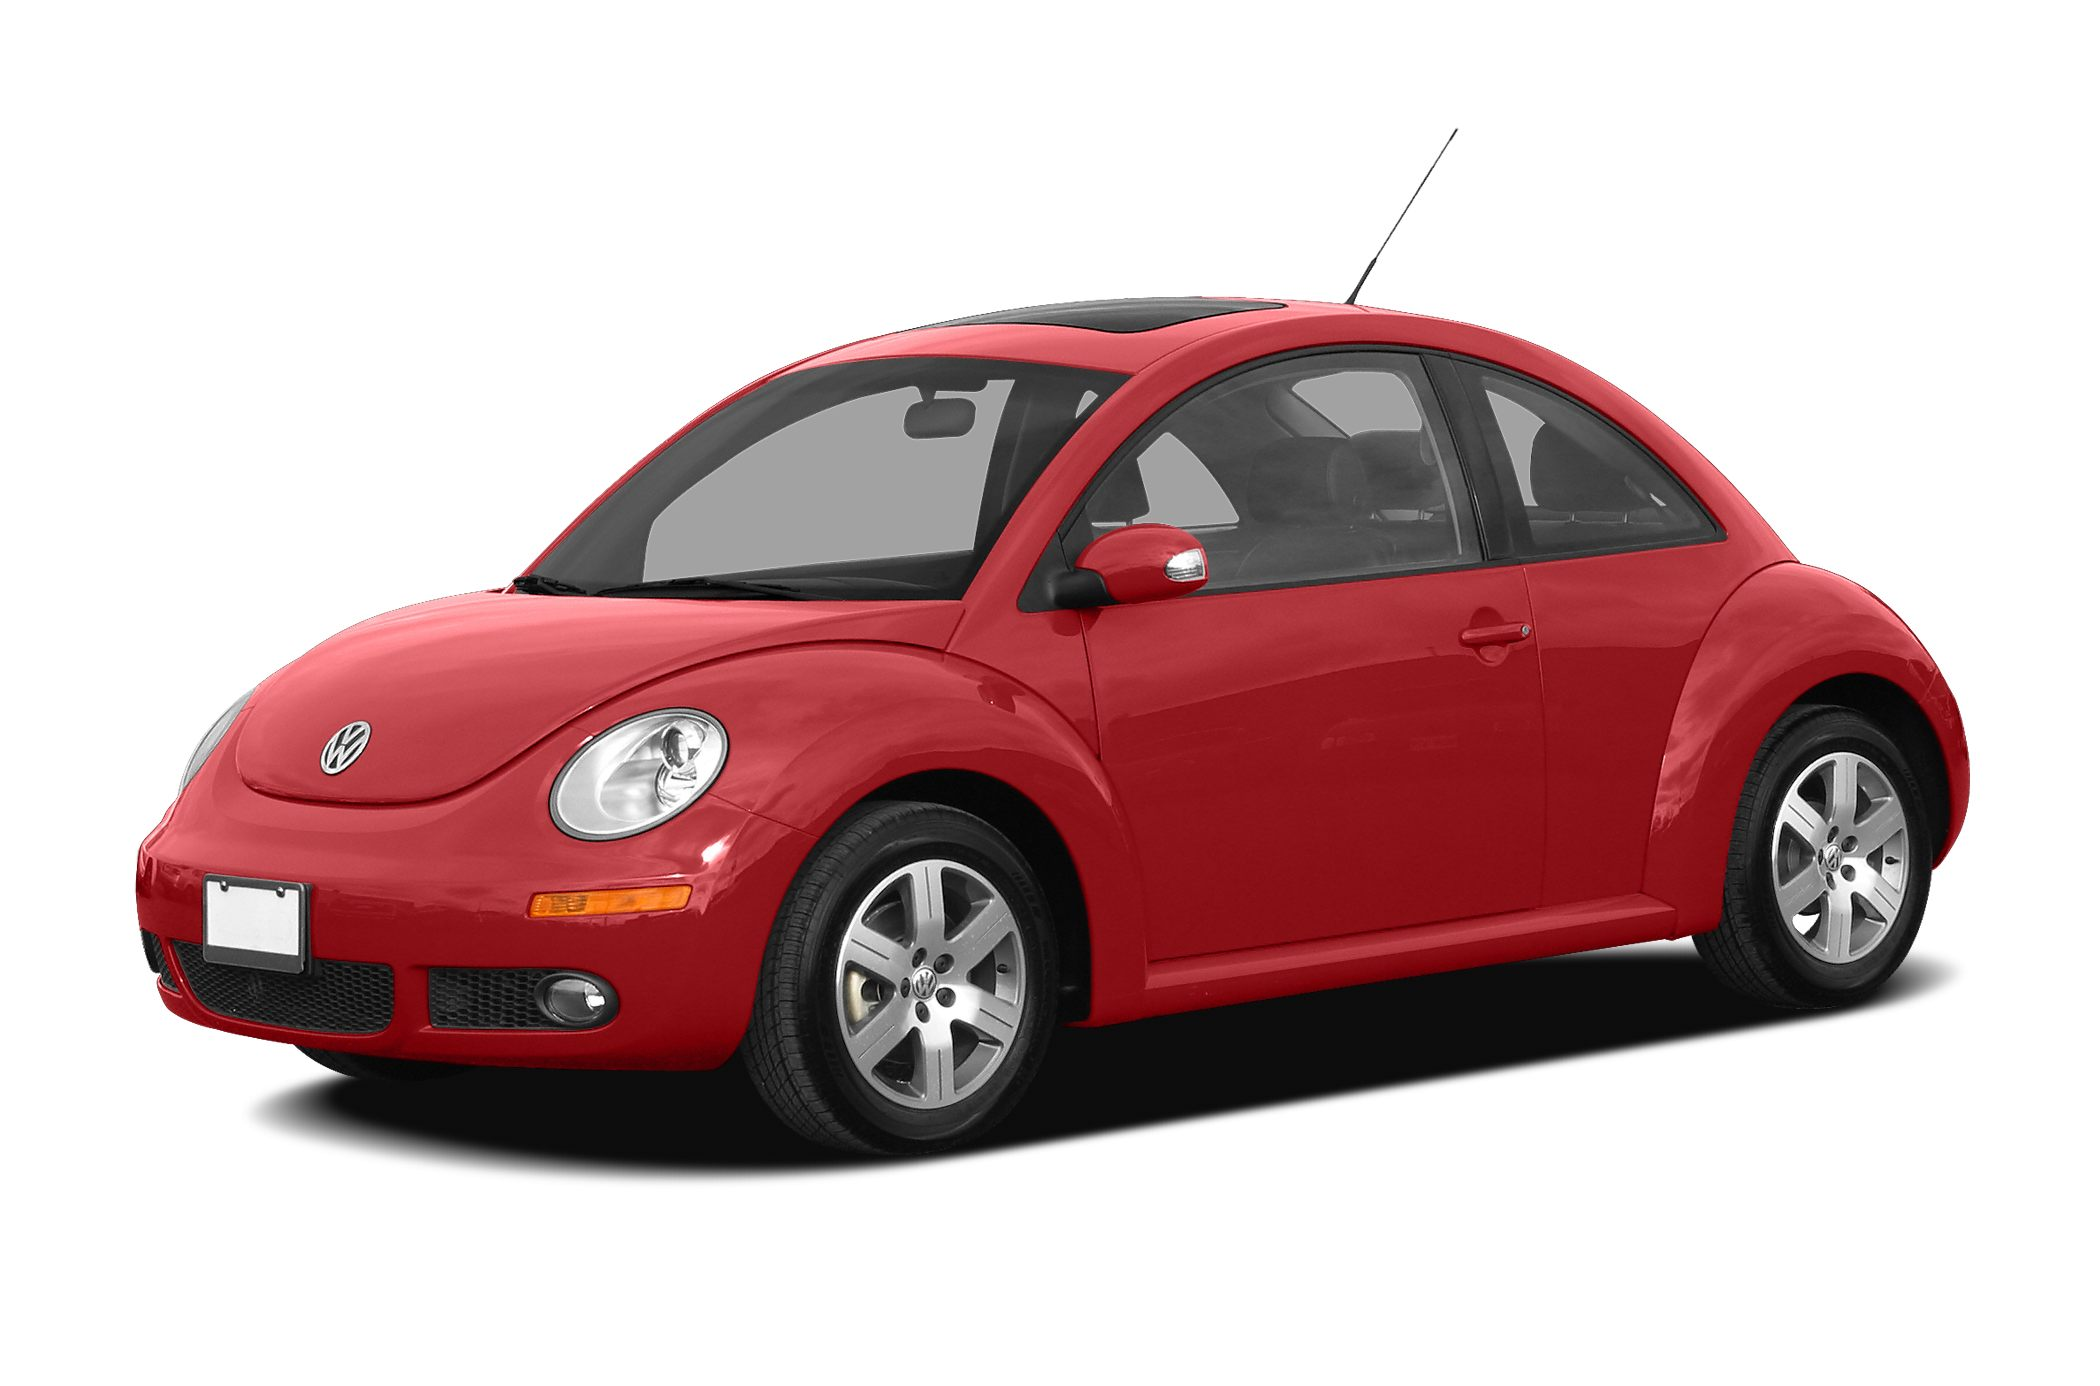 2009 Volkswagen New Beetle L Convertible for sale in Ocoee for $11,900 with 43,202 miles.